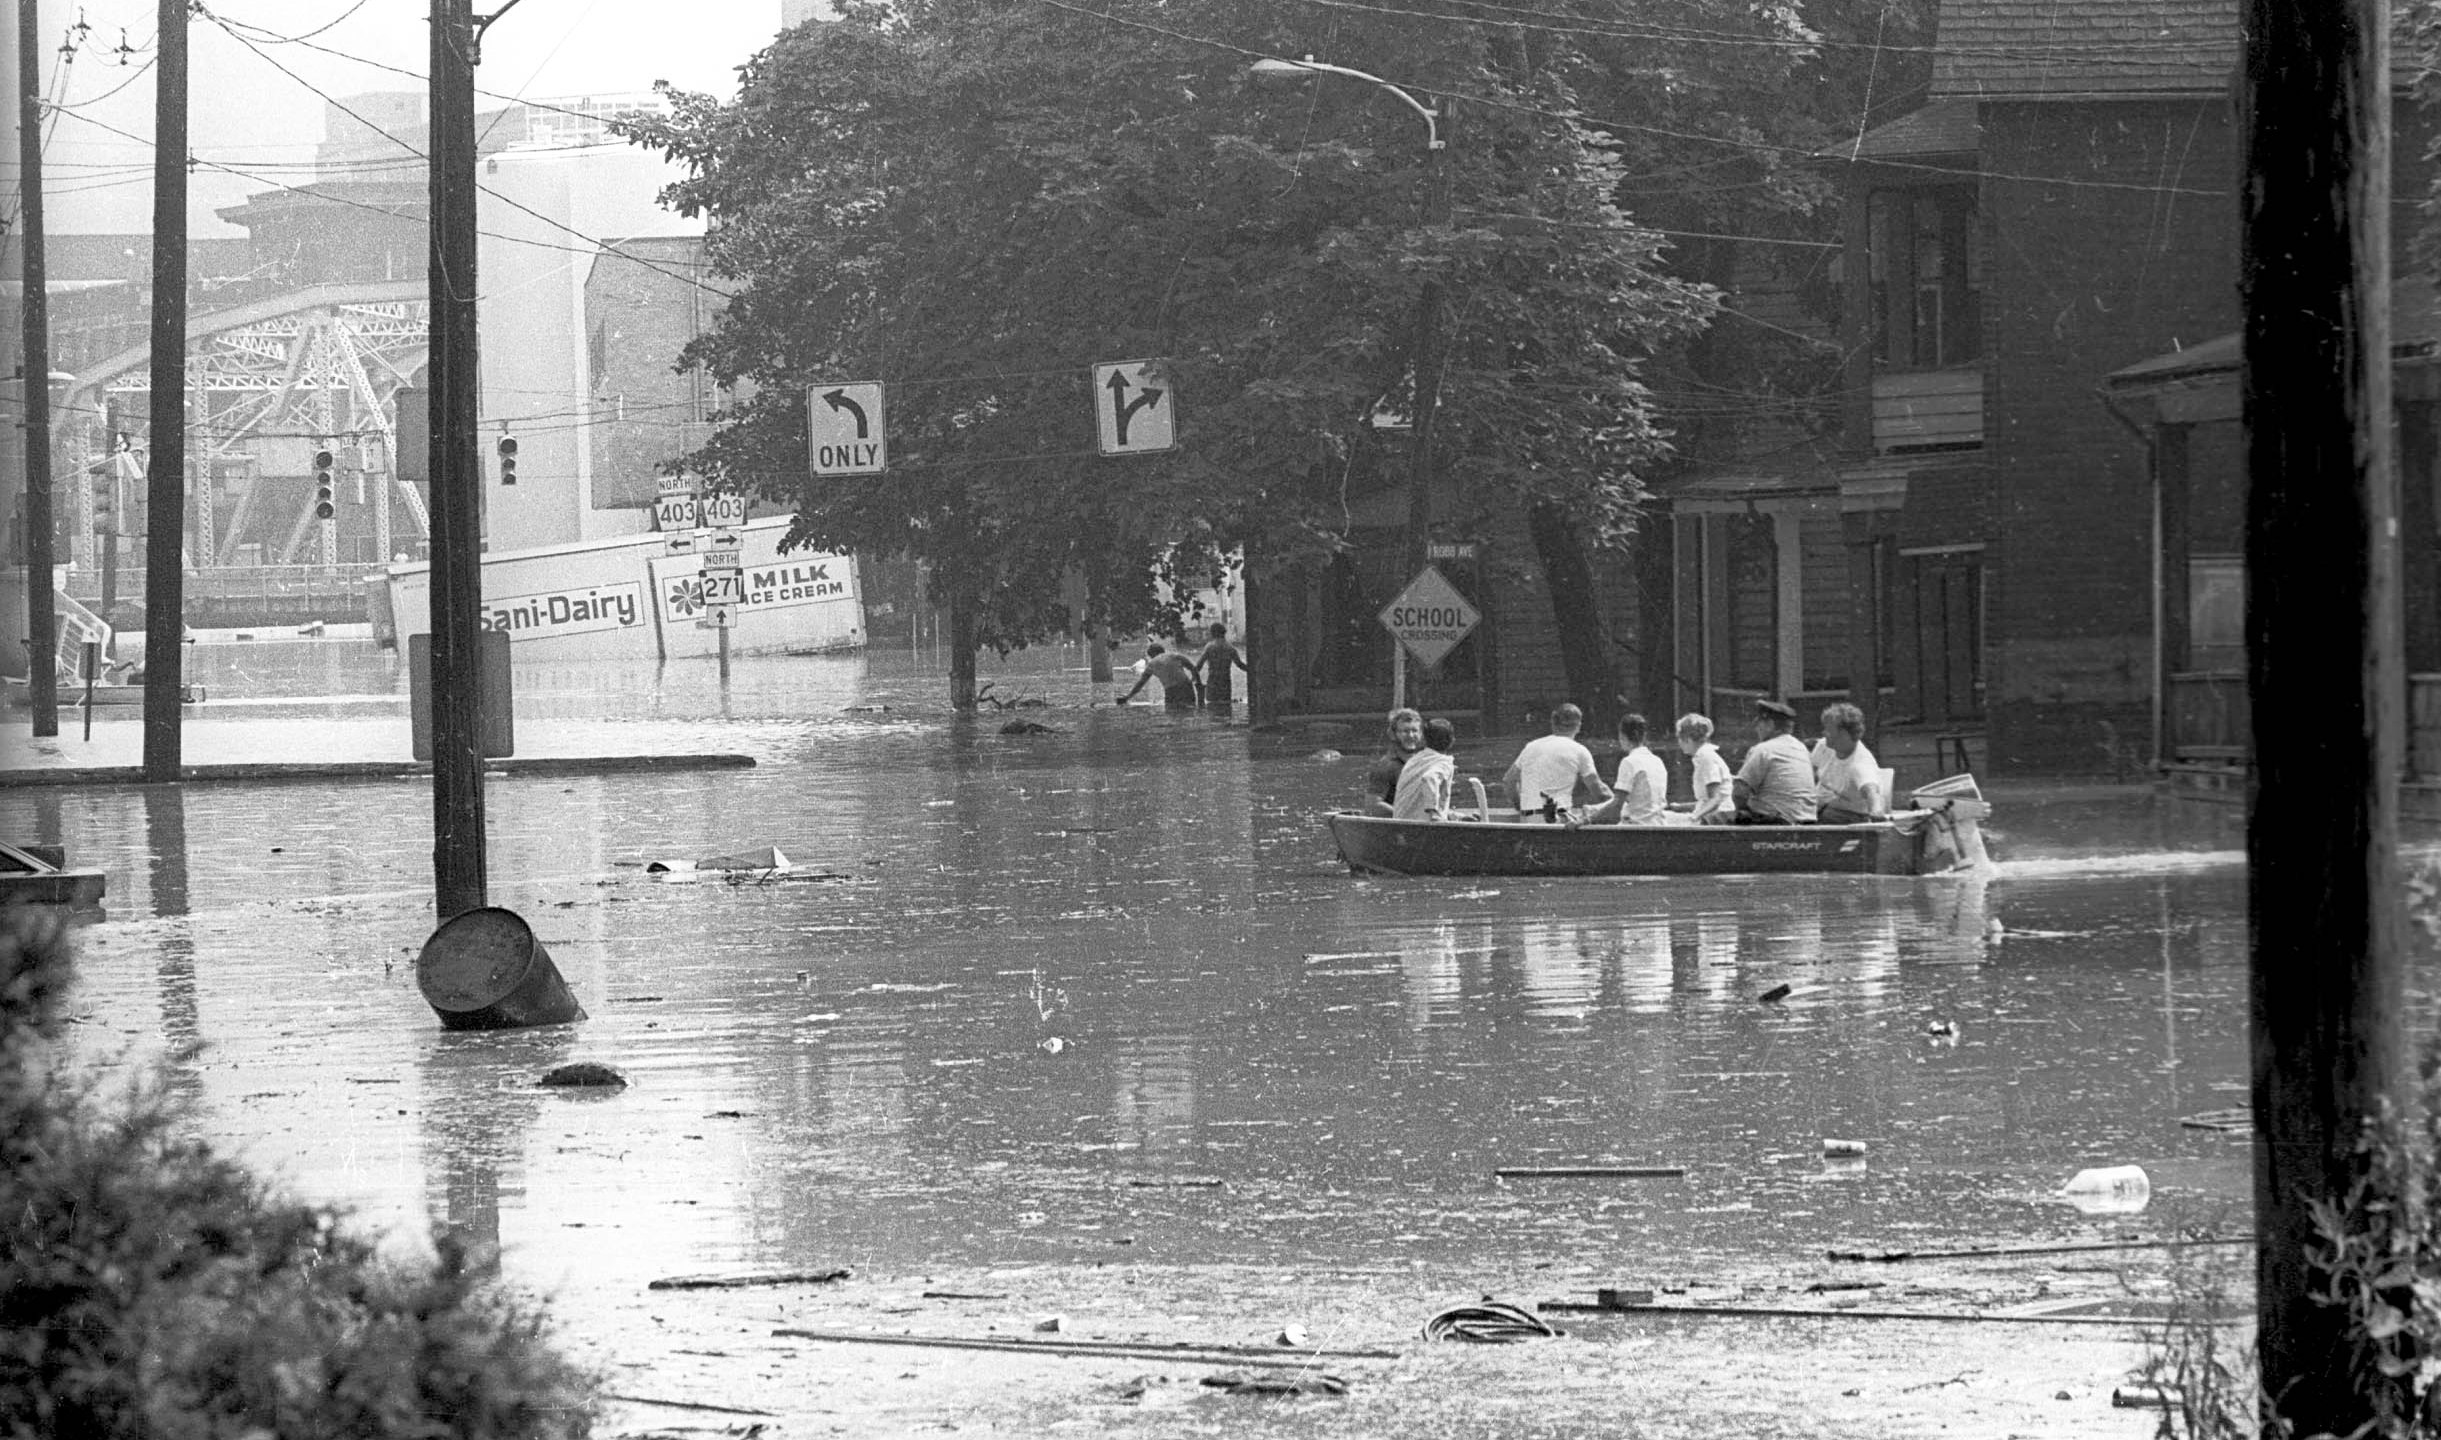 Reporter remembers covering the '77 flood